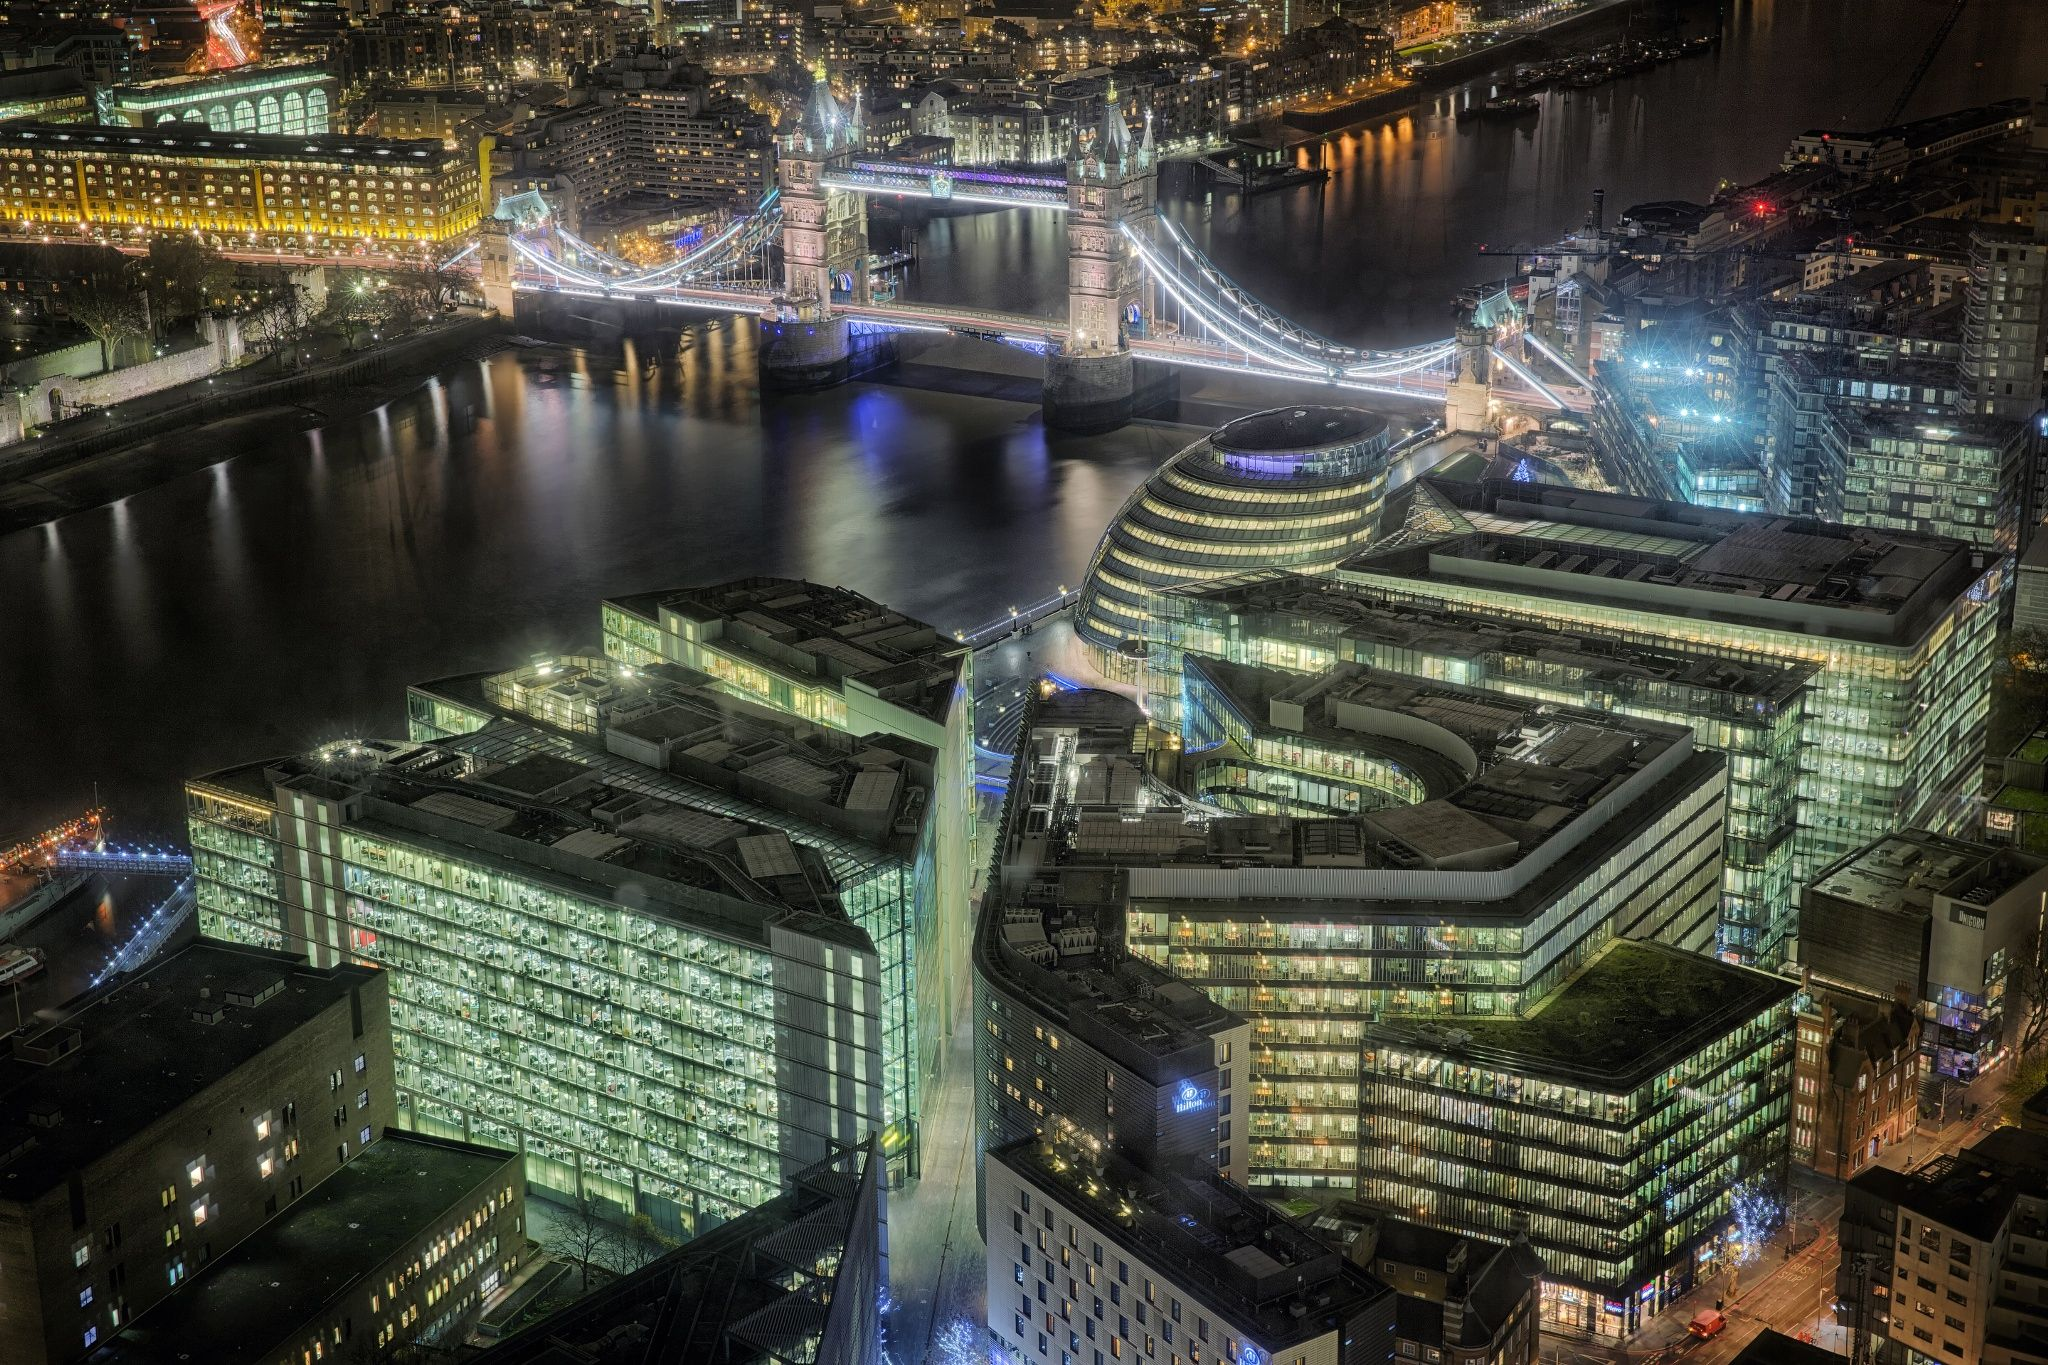 Photograph London at Night by David Foreman on 500px